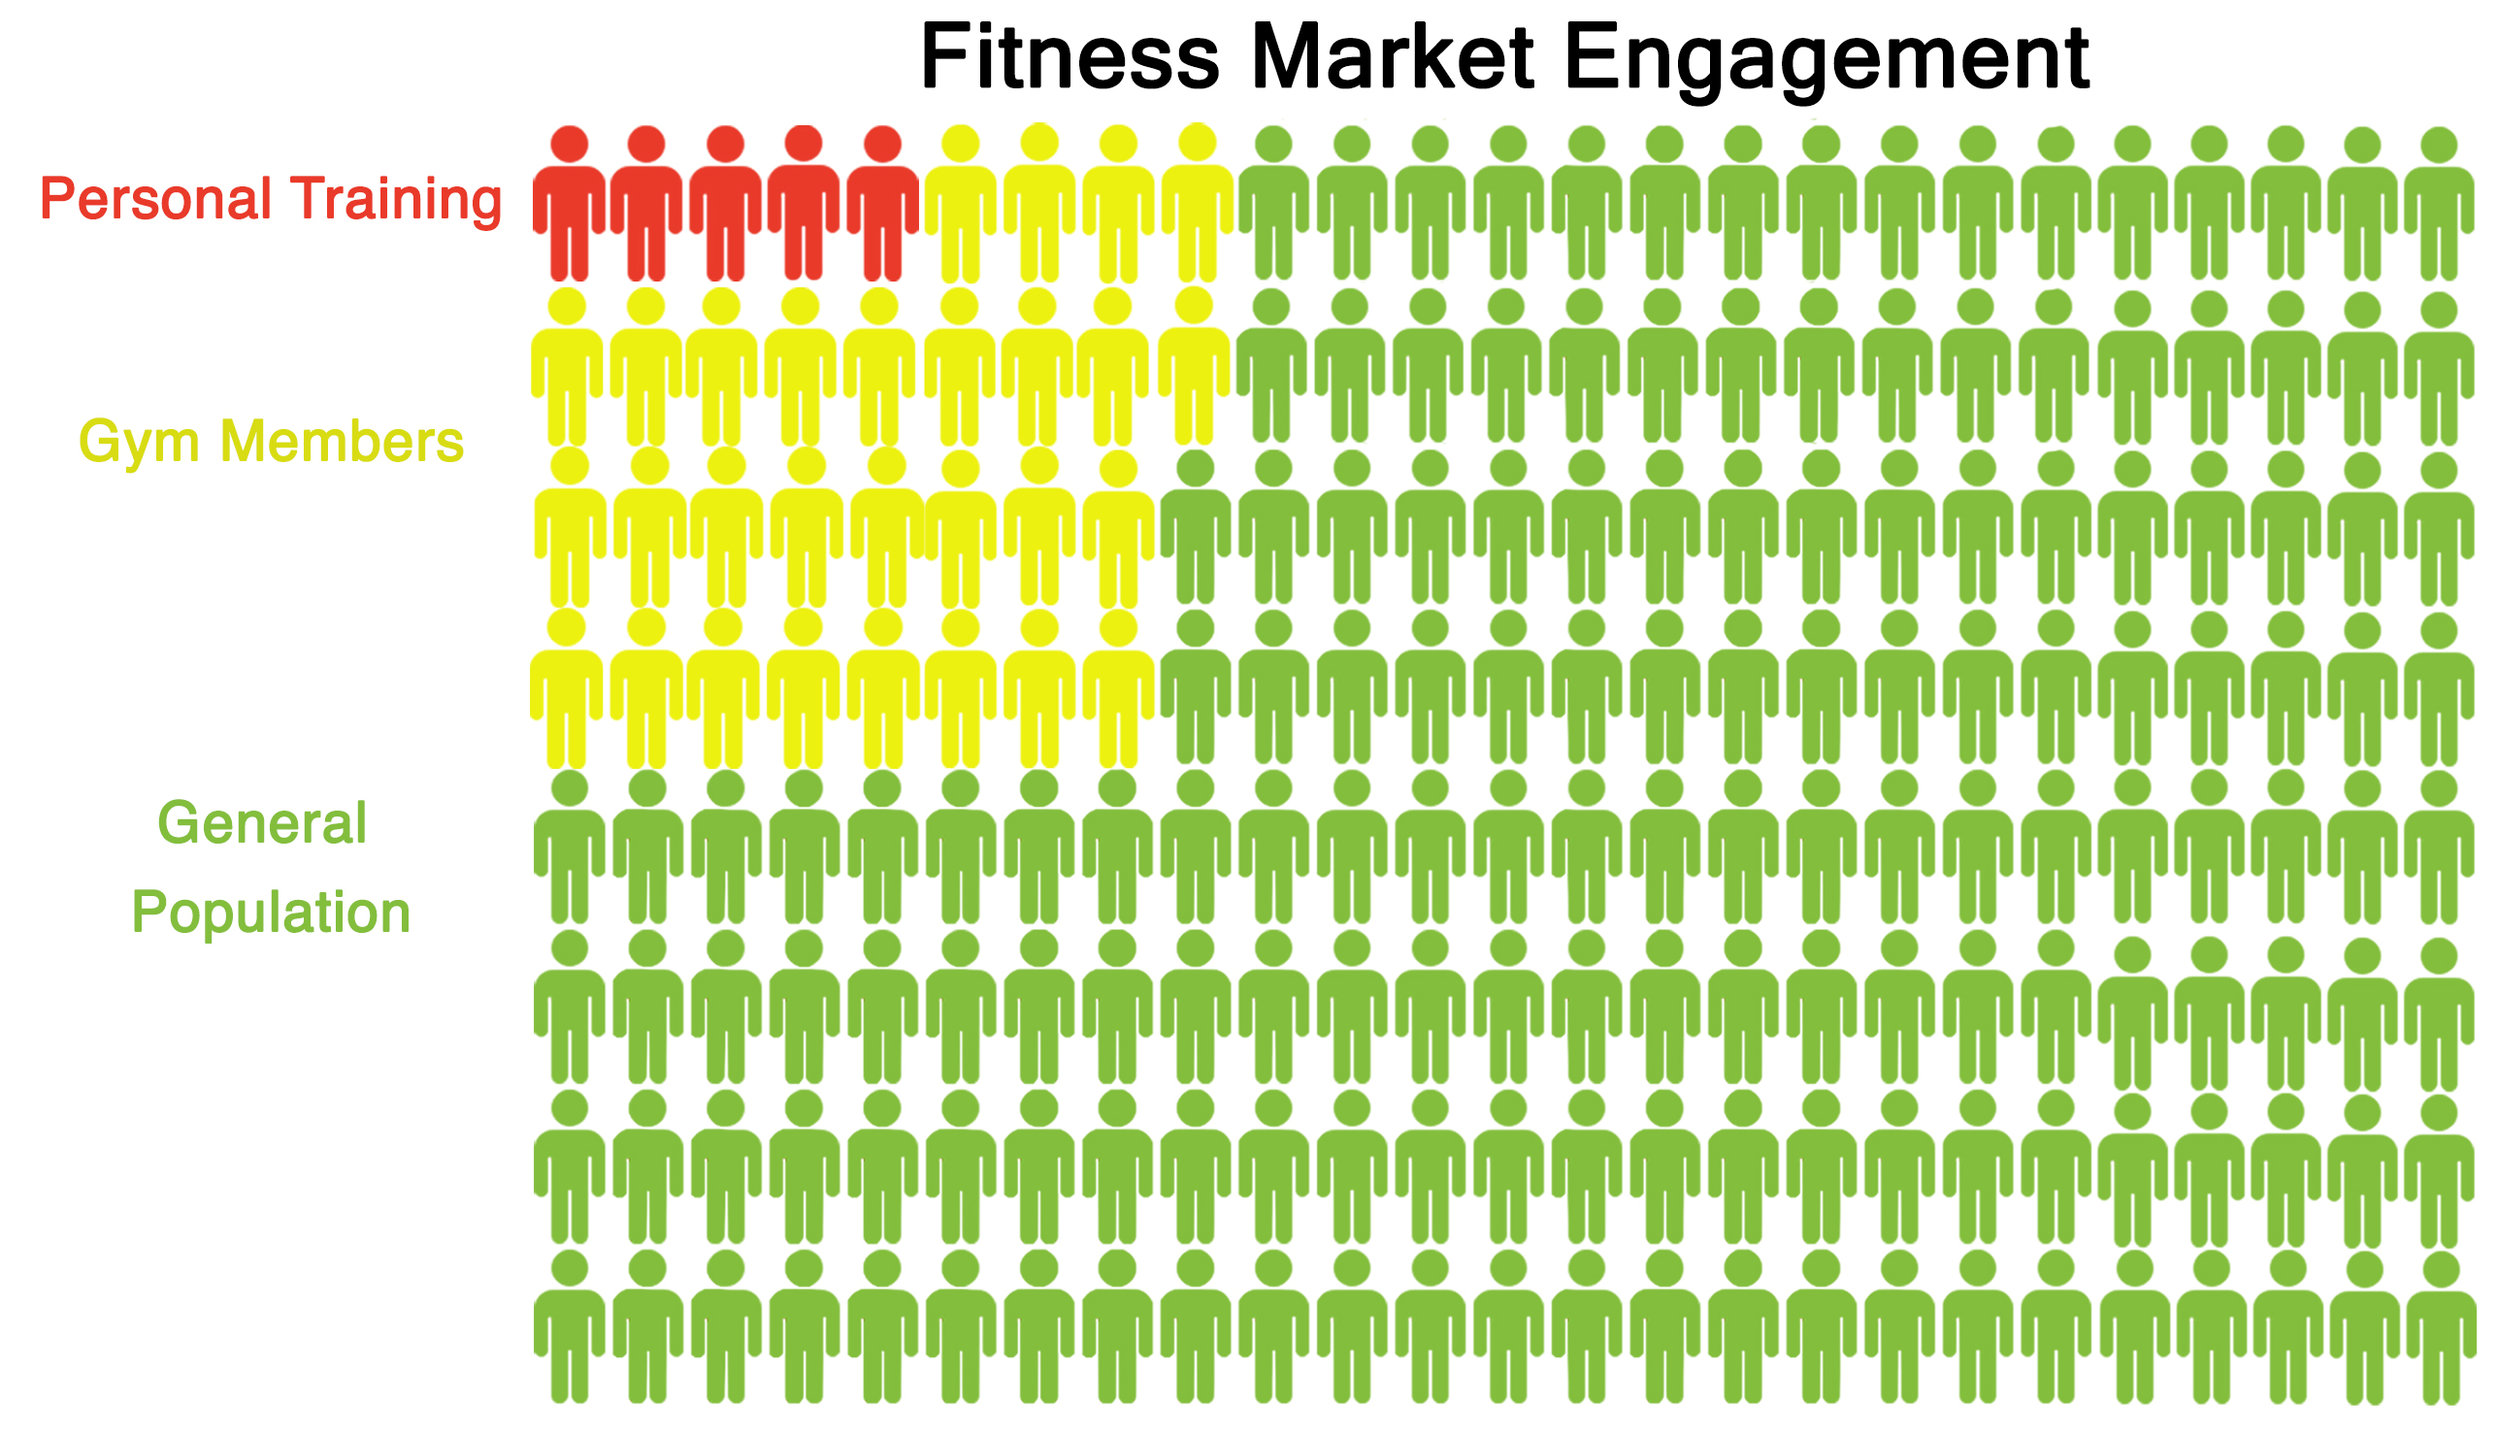 Support new people and markets - With only about 2.5% of people having a personal trainer (red) and 17% a gym membership (yellow), the real opportunity is reaching new markets with new options to provide content and support. Stop working hard to try to grow the red and expand your services to chase the green.